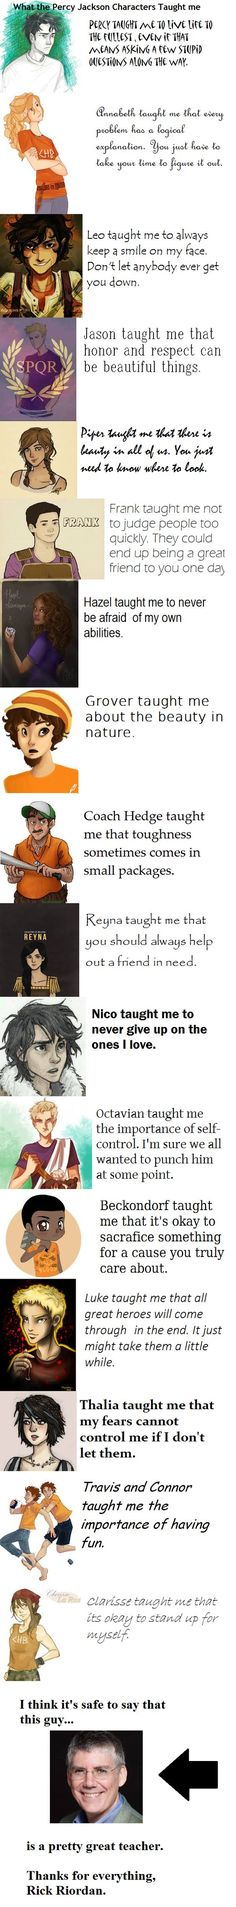 What the Percy Jackson Characters Taught me~ Rick Riordan is a great teacher. Books and Reading<<<<Octavian's though!!! XD XD XD: